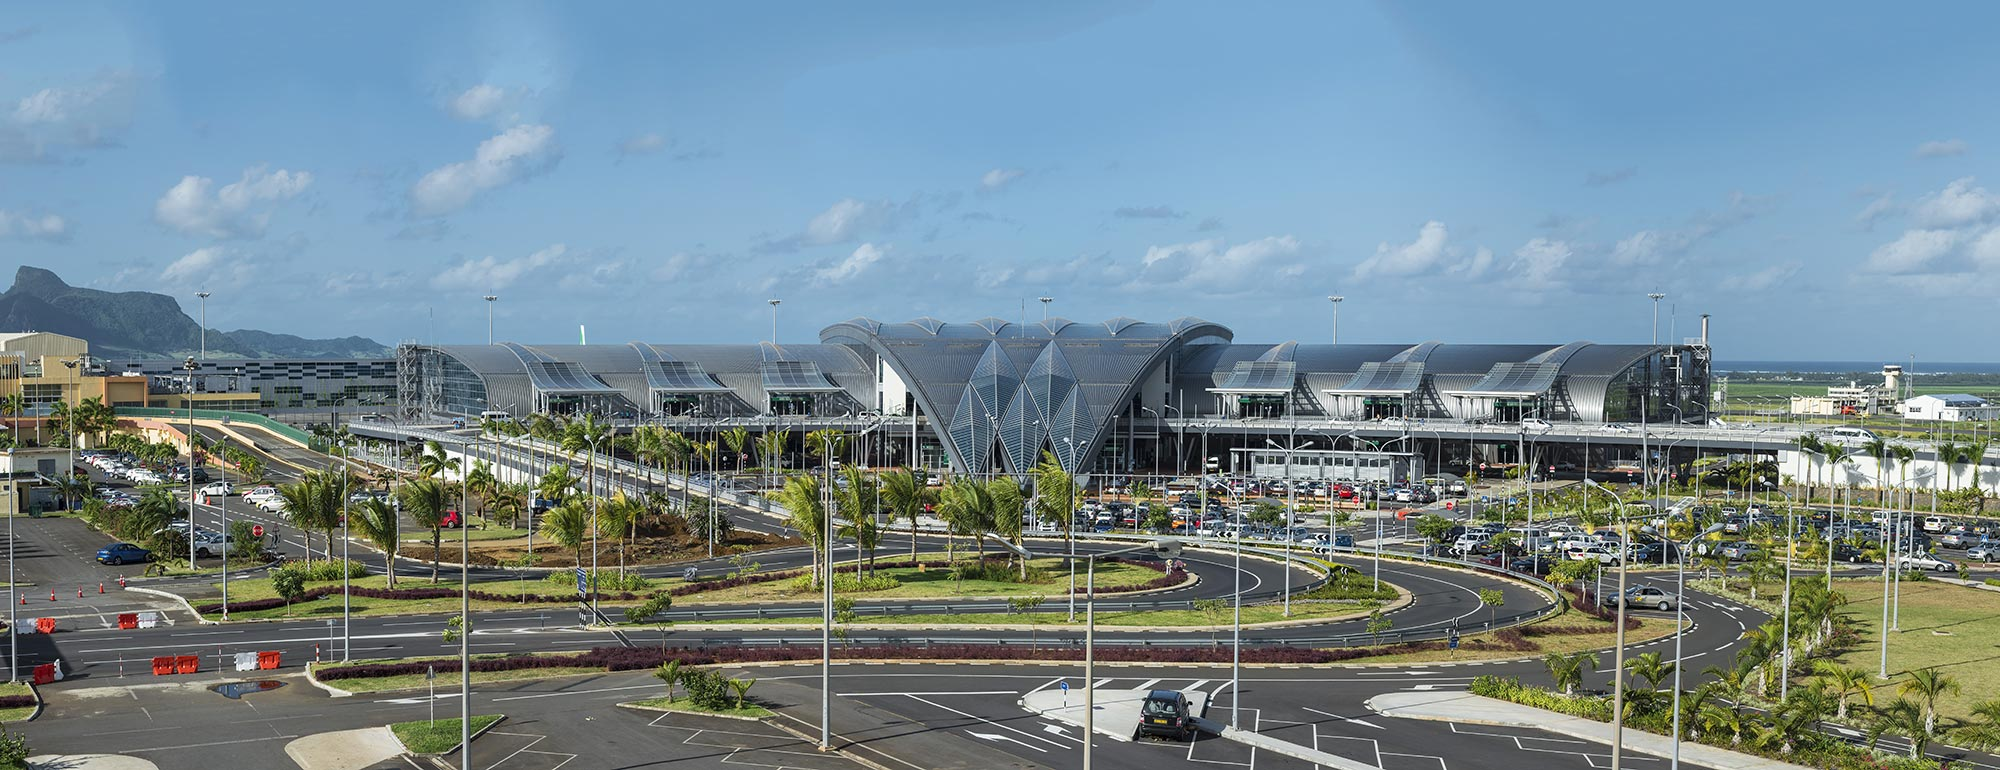 Aéroport international Sir-Seewoosagur-Ramgoolam